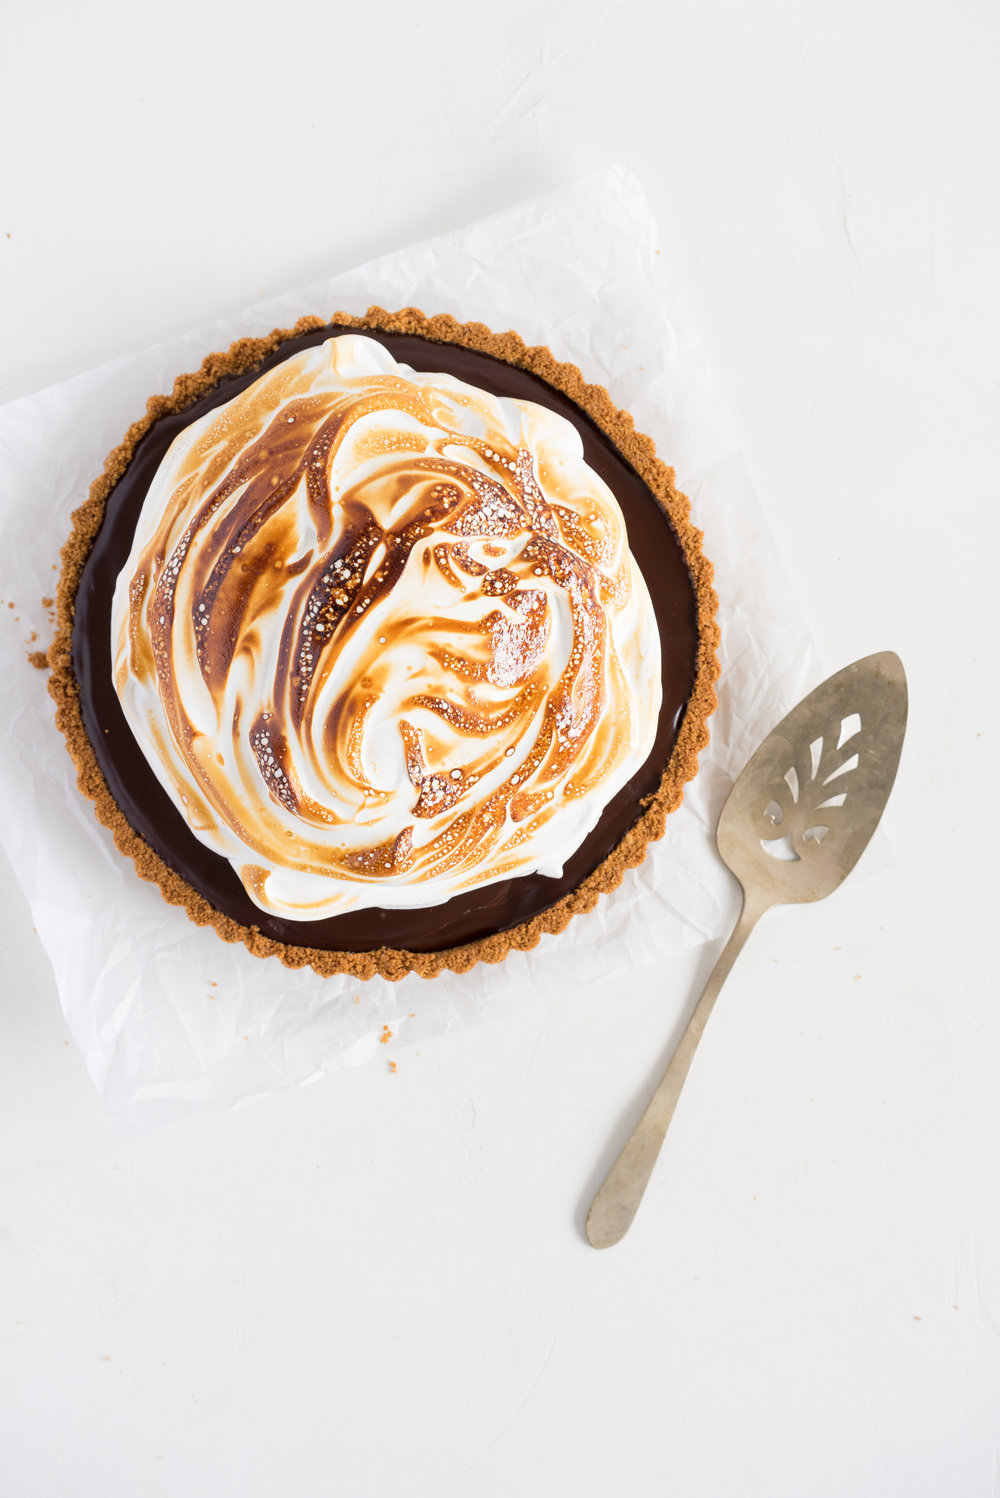 S'mores tart - brown butter graham cracker crust, silky chocolate ganache filling, and toasty vanilla bean marshmallow. #tart #chocolatetart #s'morestart #grahamcracker #smorestart #brownbutter #chocolateganache